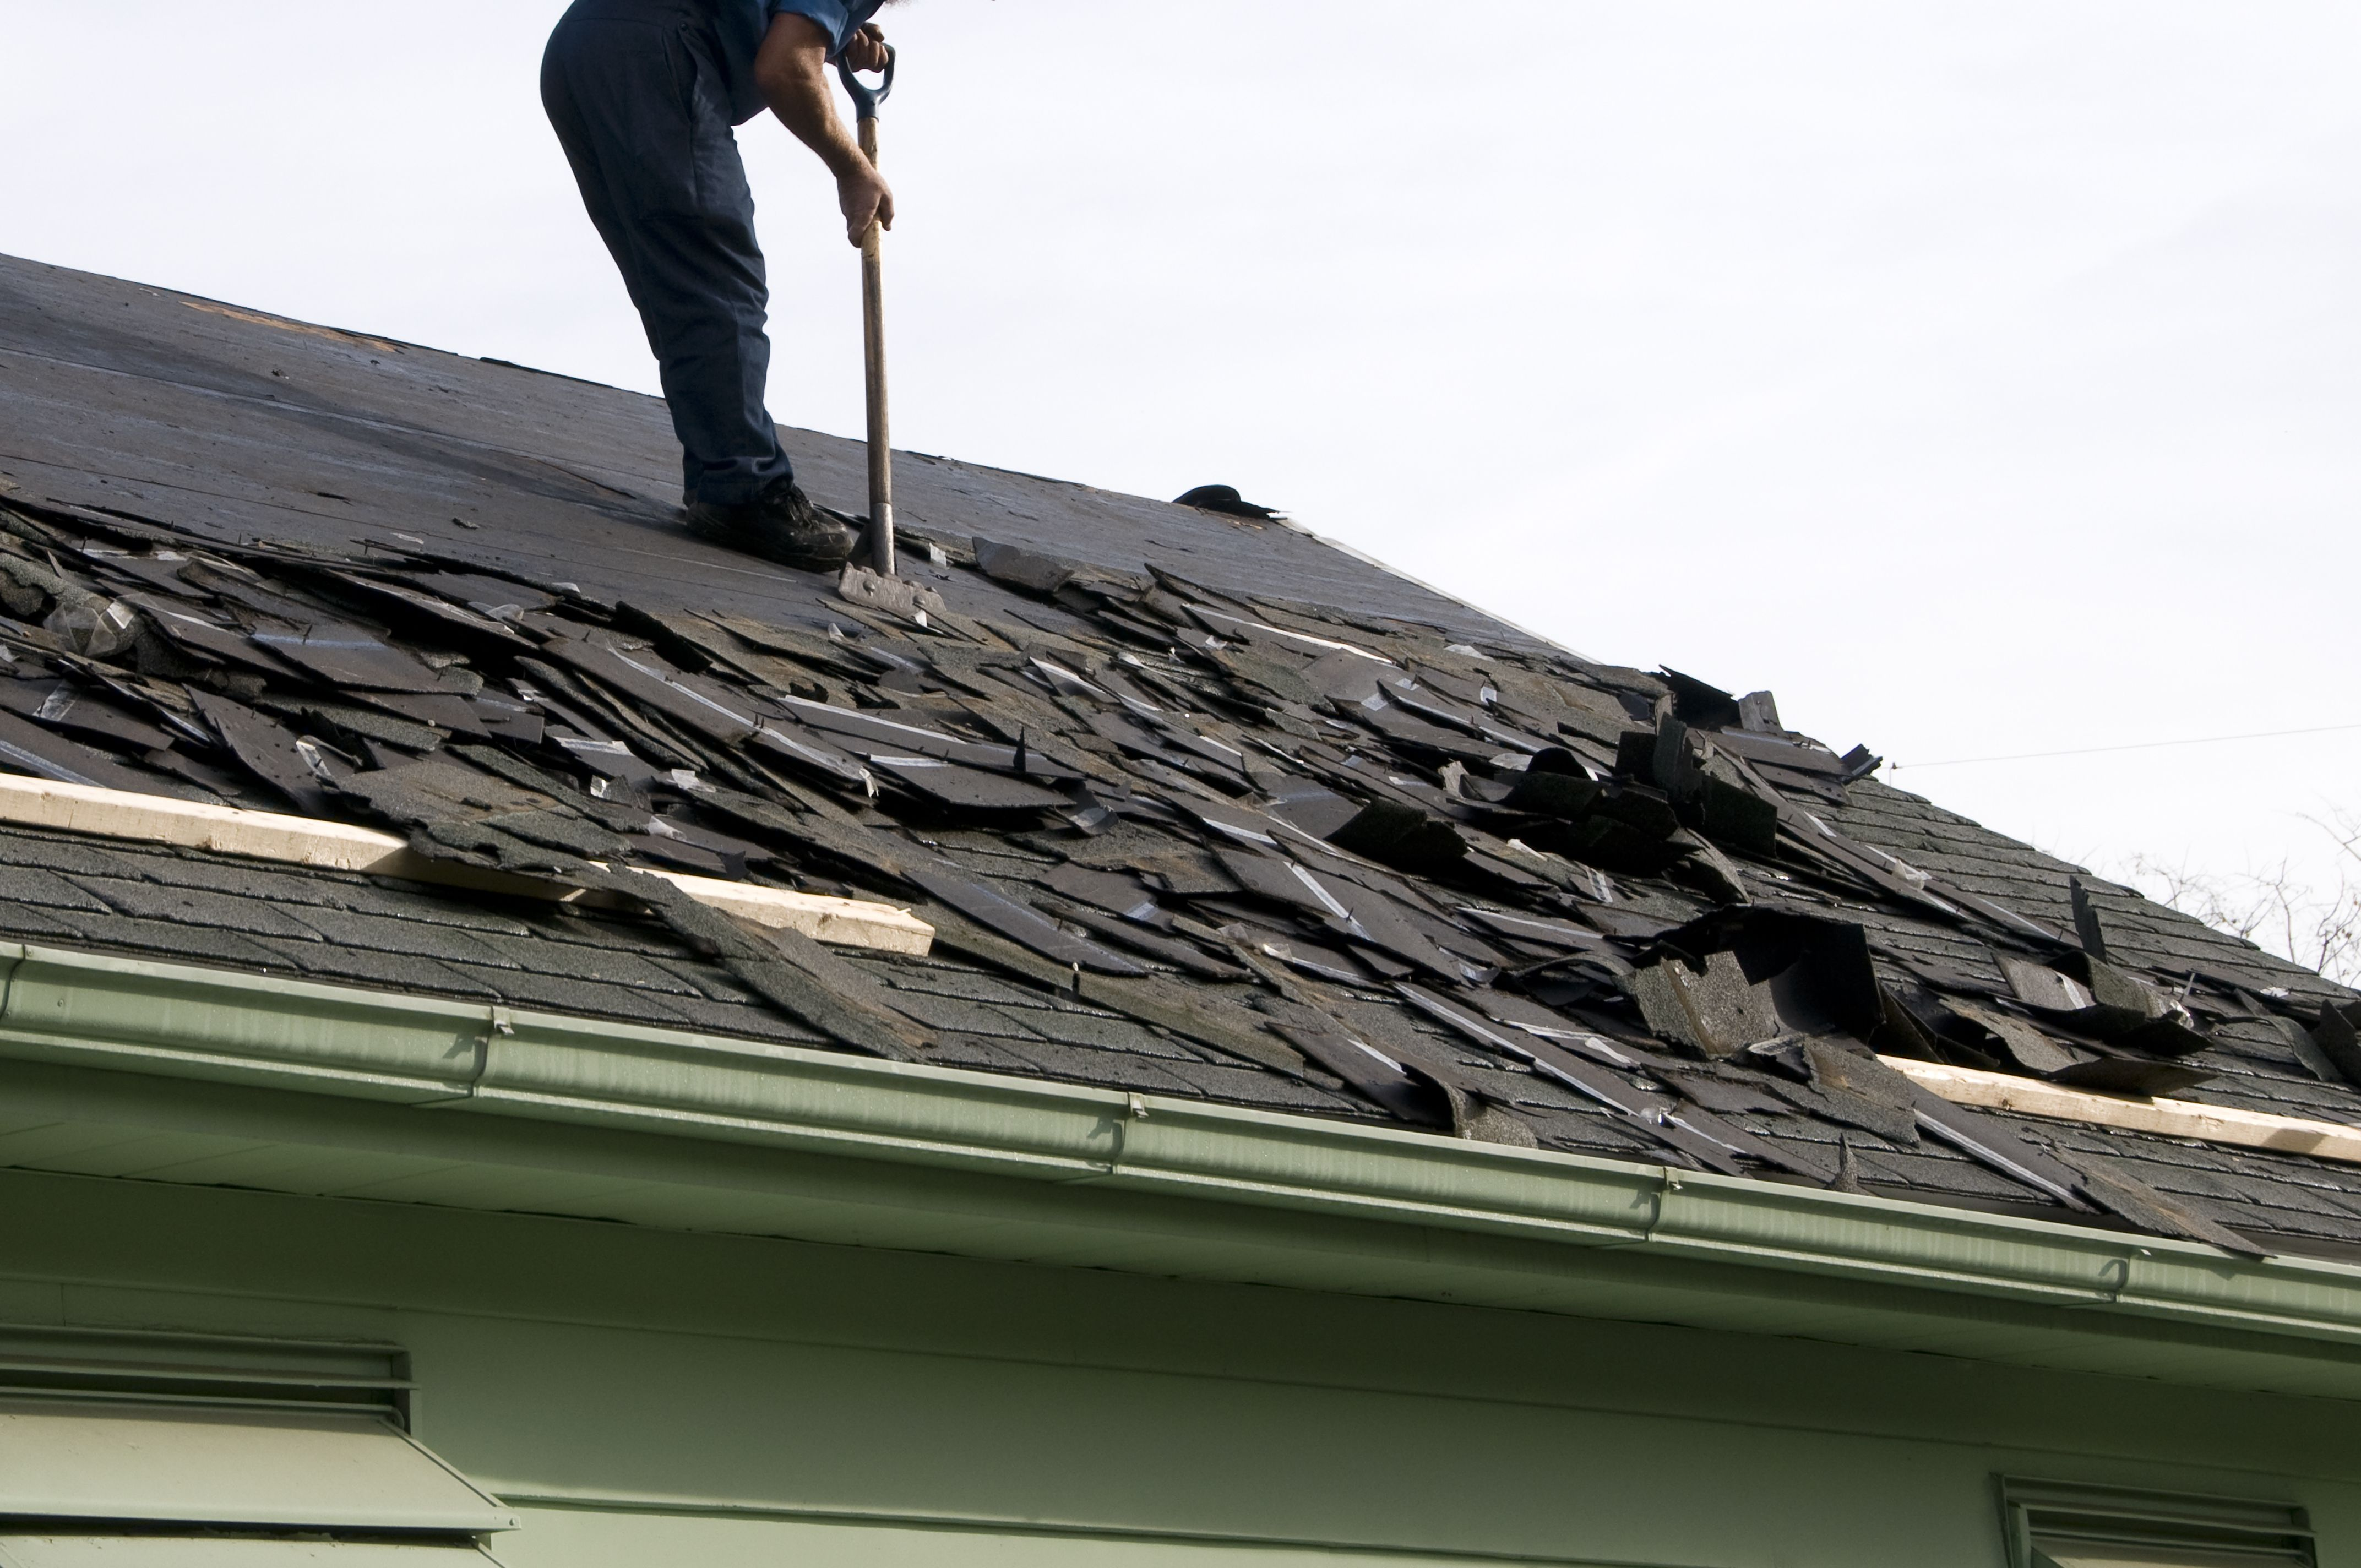 Roofing Shingles Replace Any Missing Shingles As Soon As You Notice That They Have Come Loose One Missing Metal Shingles Zinc Cladding Copper Metal Roof